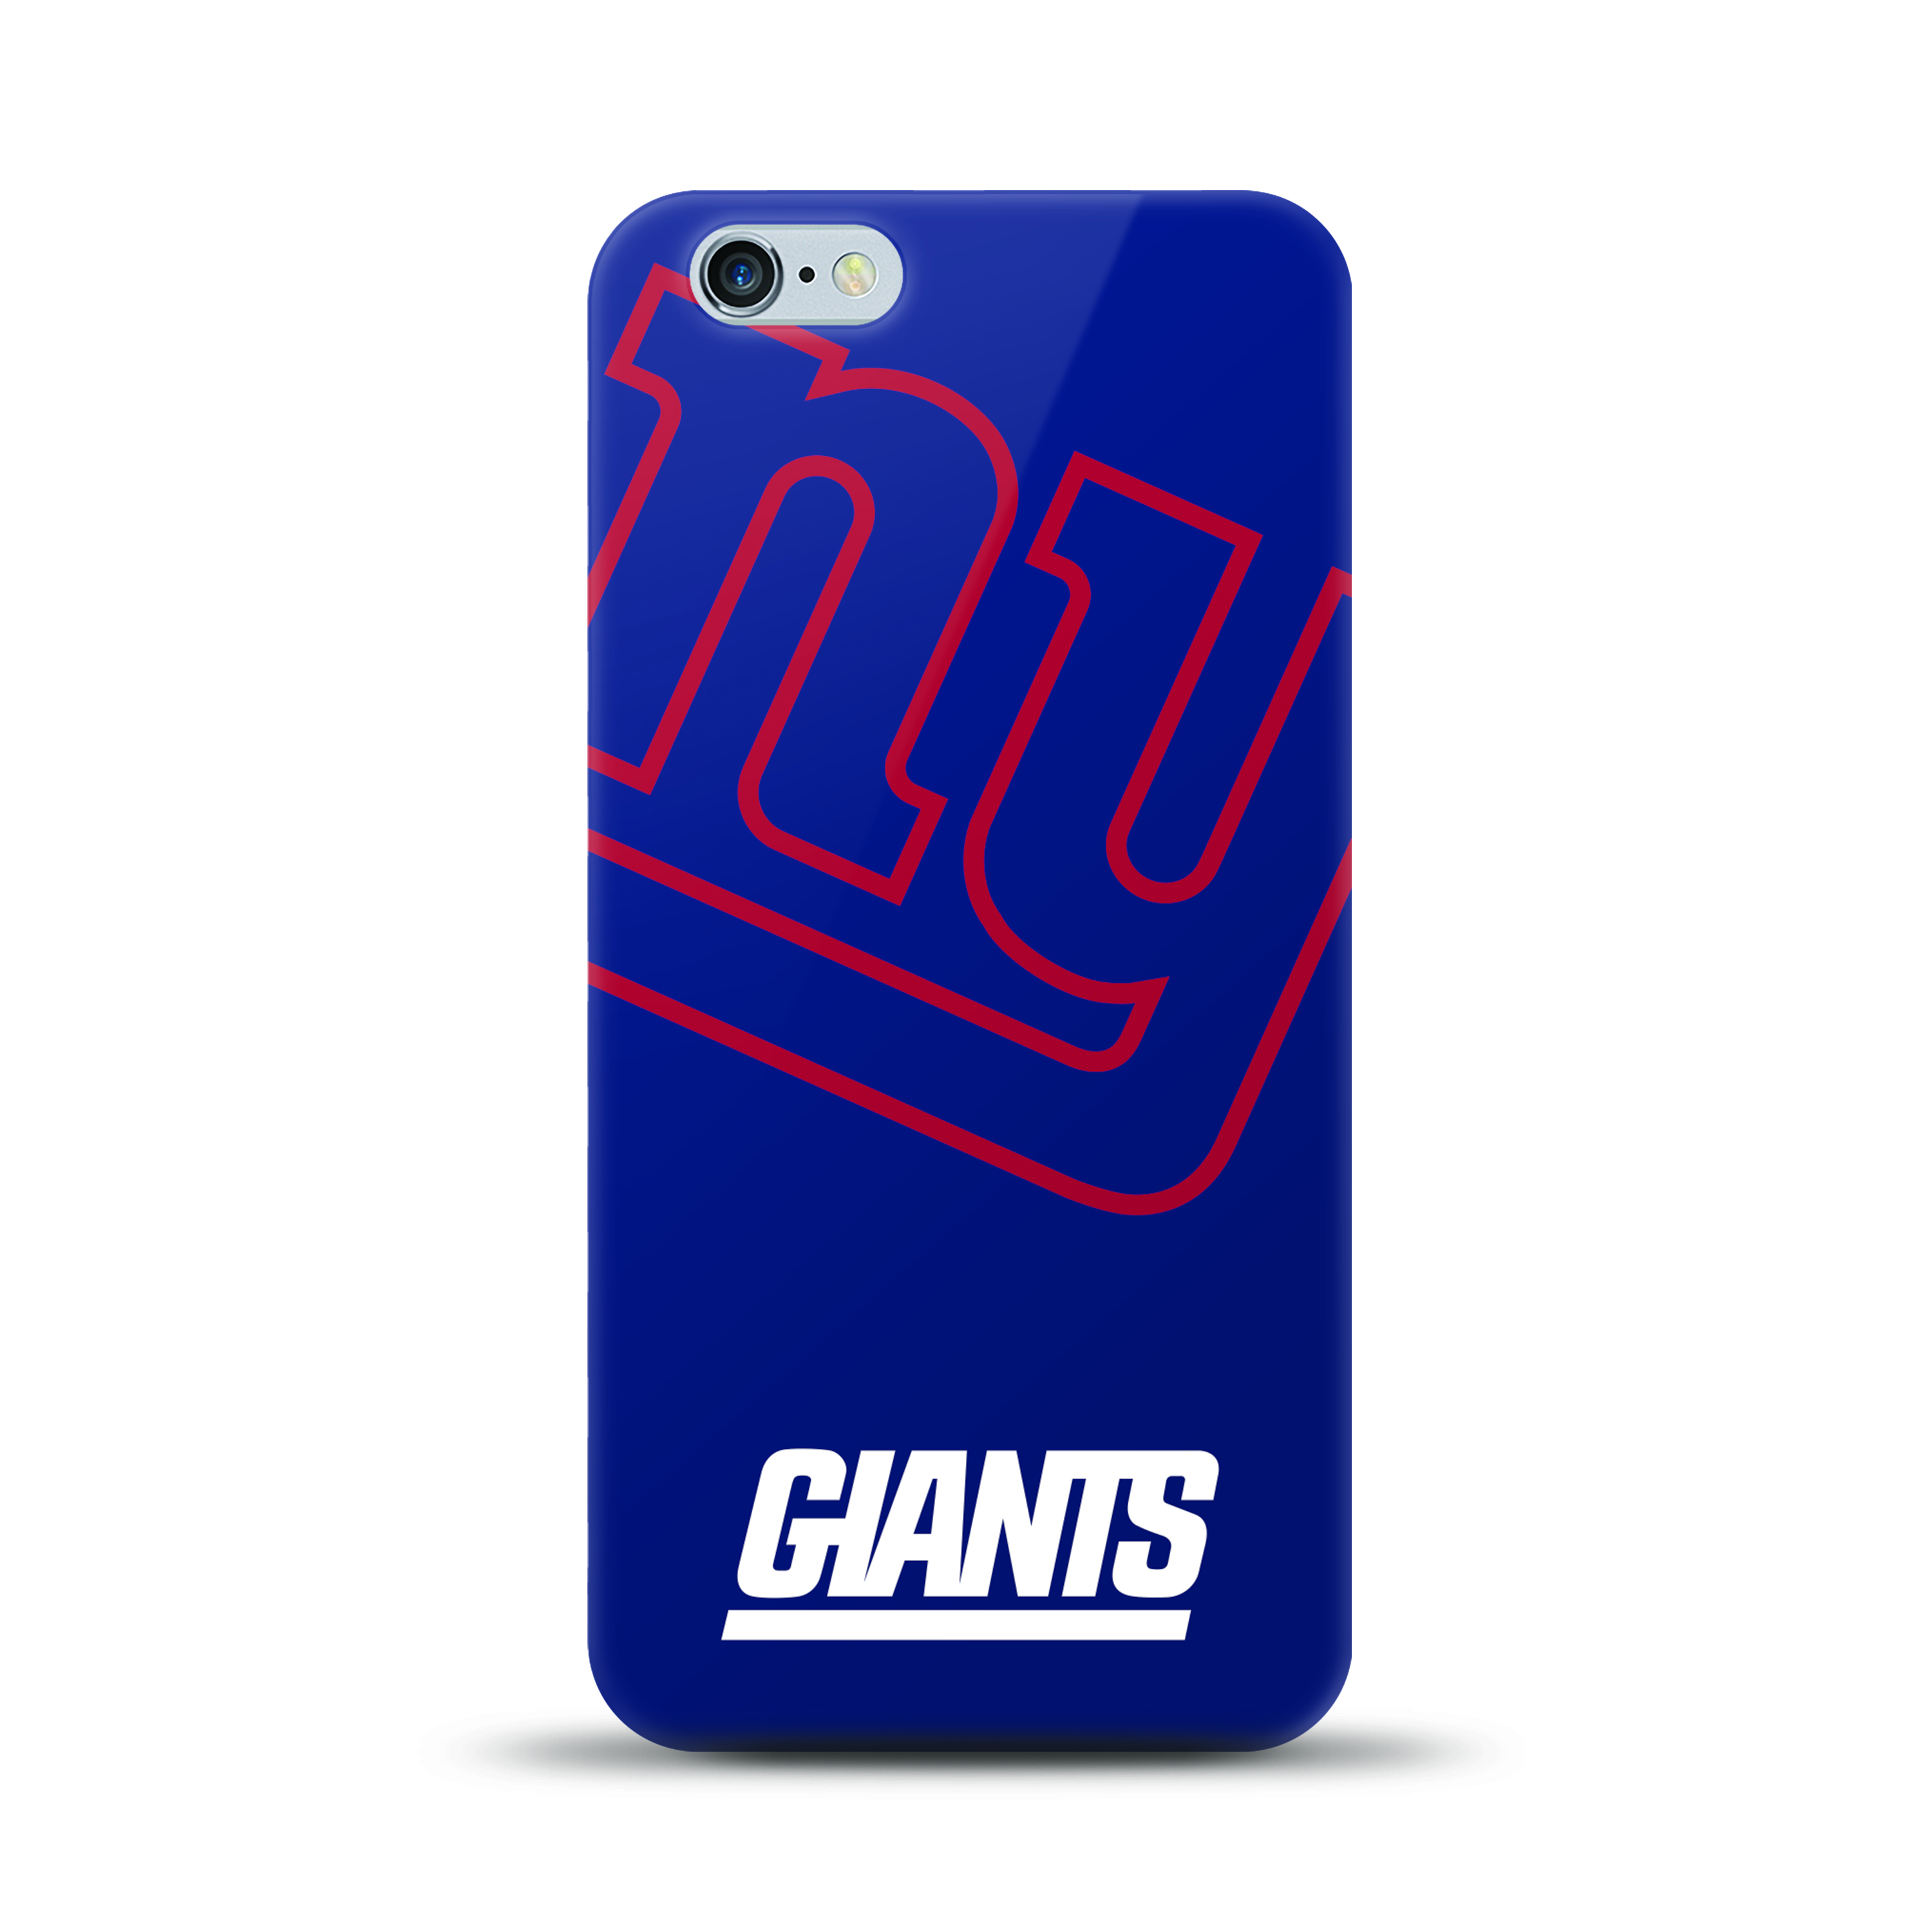 Apple iPhone 6 PLUS/6S PLUS (5.5 inch)Case, NFL Licensed [New York Giants] Protective Silicone TPU Case For Apple iPhone 6 PLUS/6S PLUS (5.5 inch)